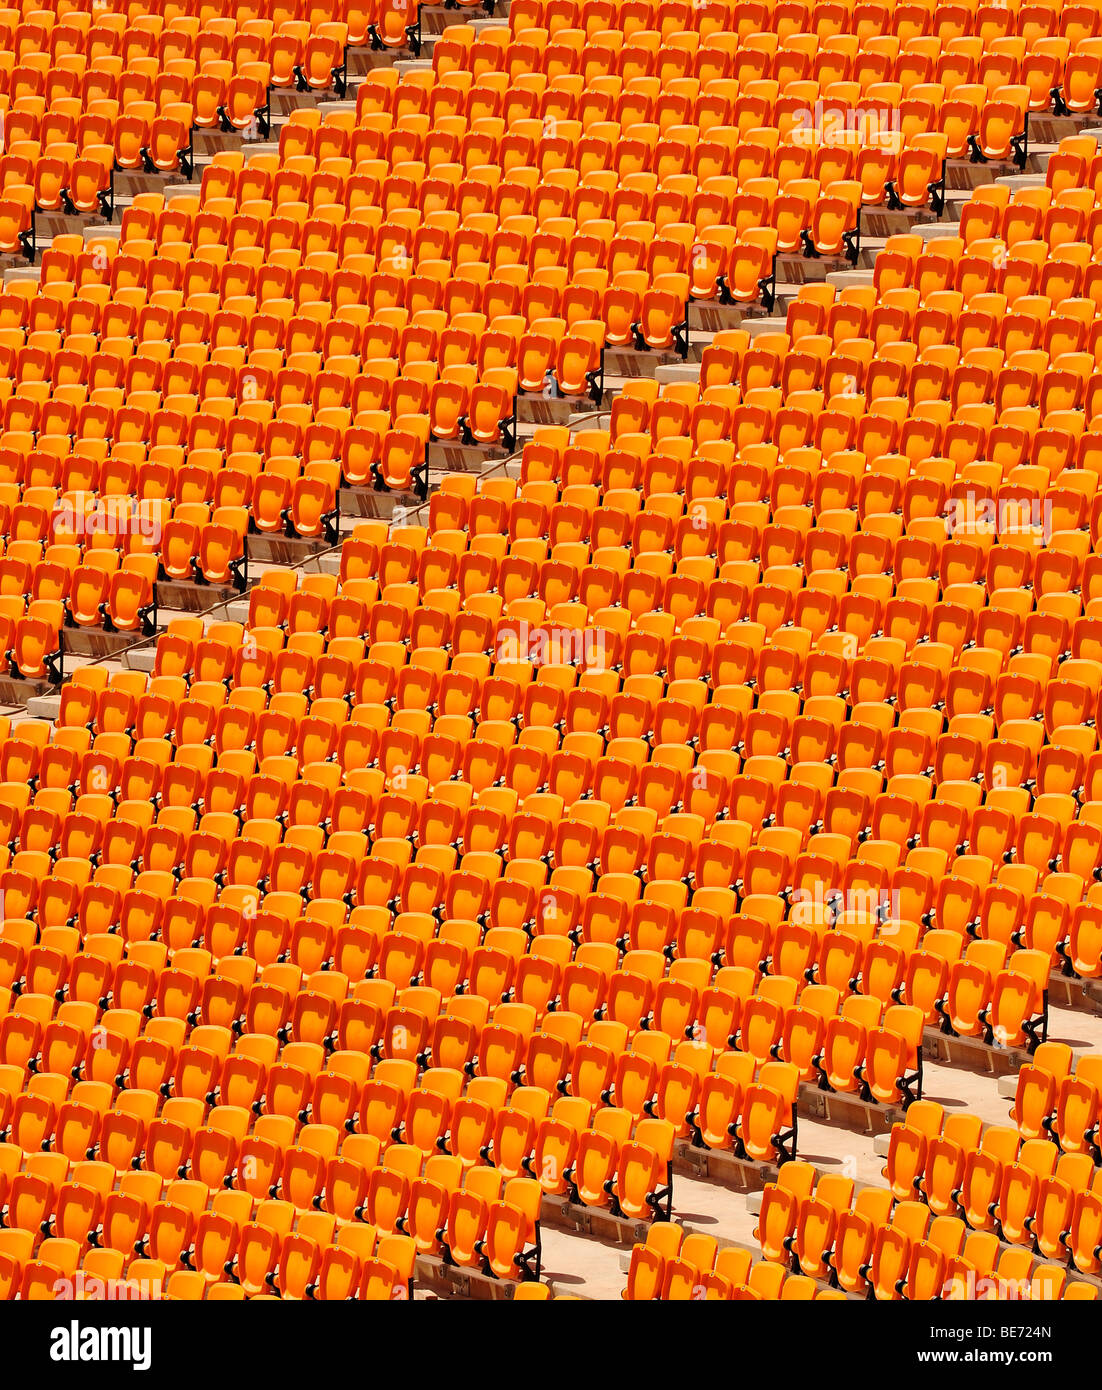 Rows of seats, grandstand, in a football stadium - Stock Image